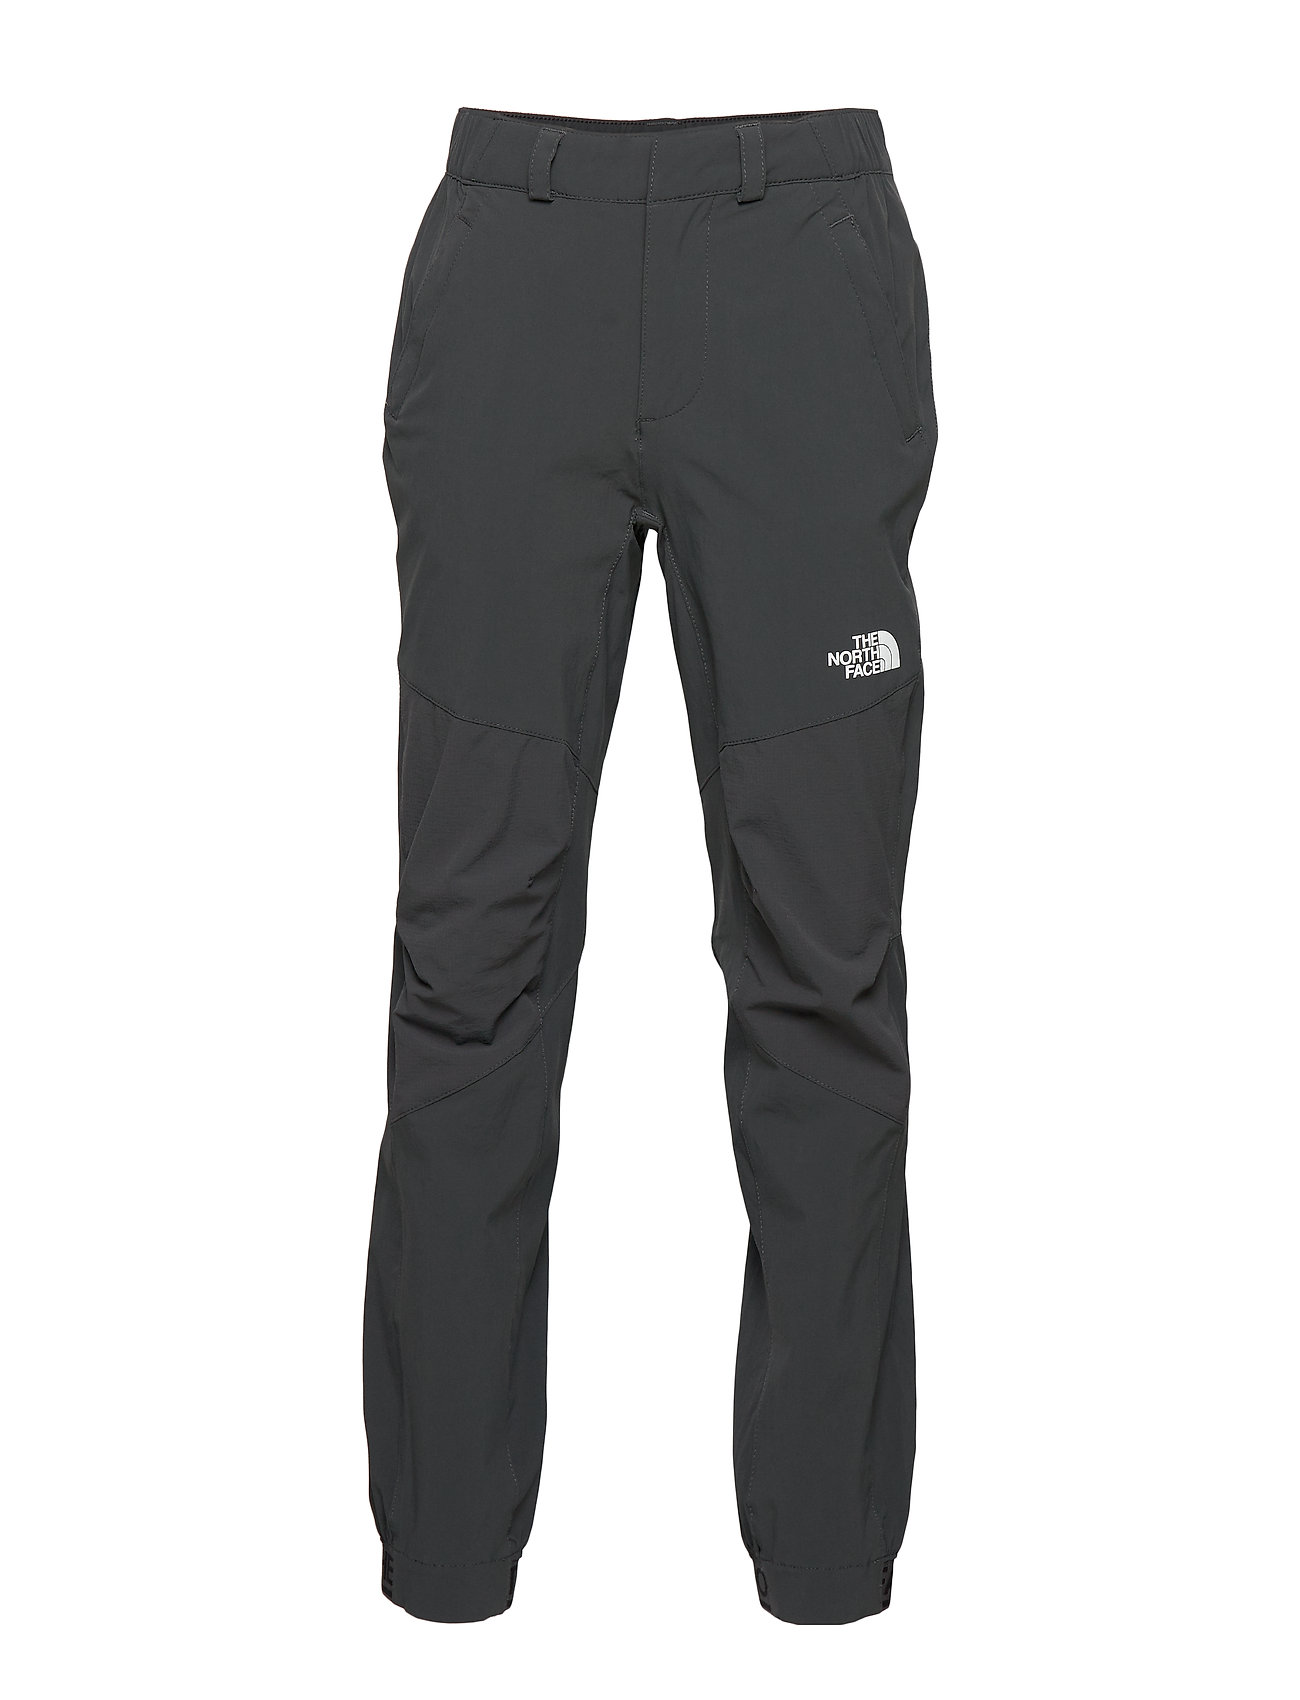 The North Face B EXPLORATION PANT 2 - ASPHALT GREY